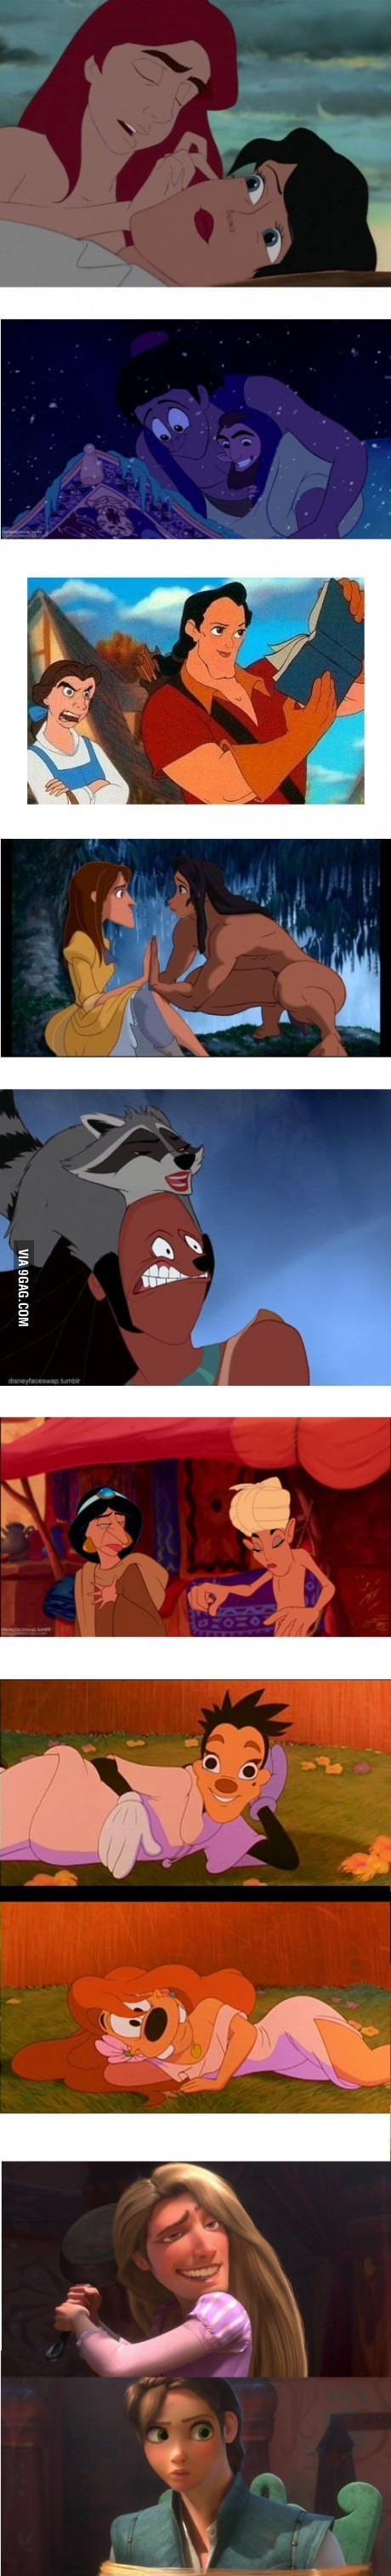 The Best of Disney Face Swaps